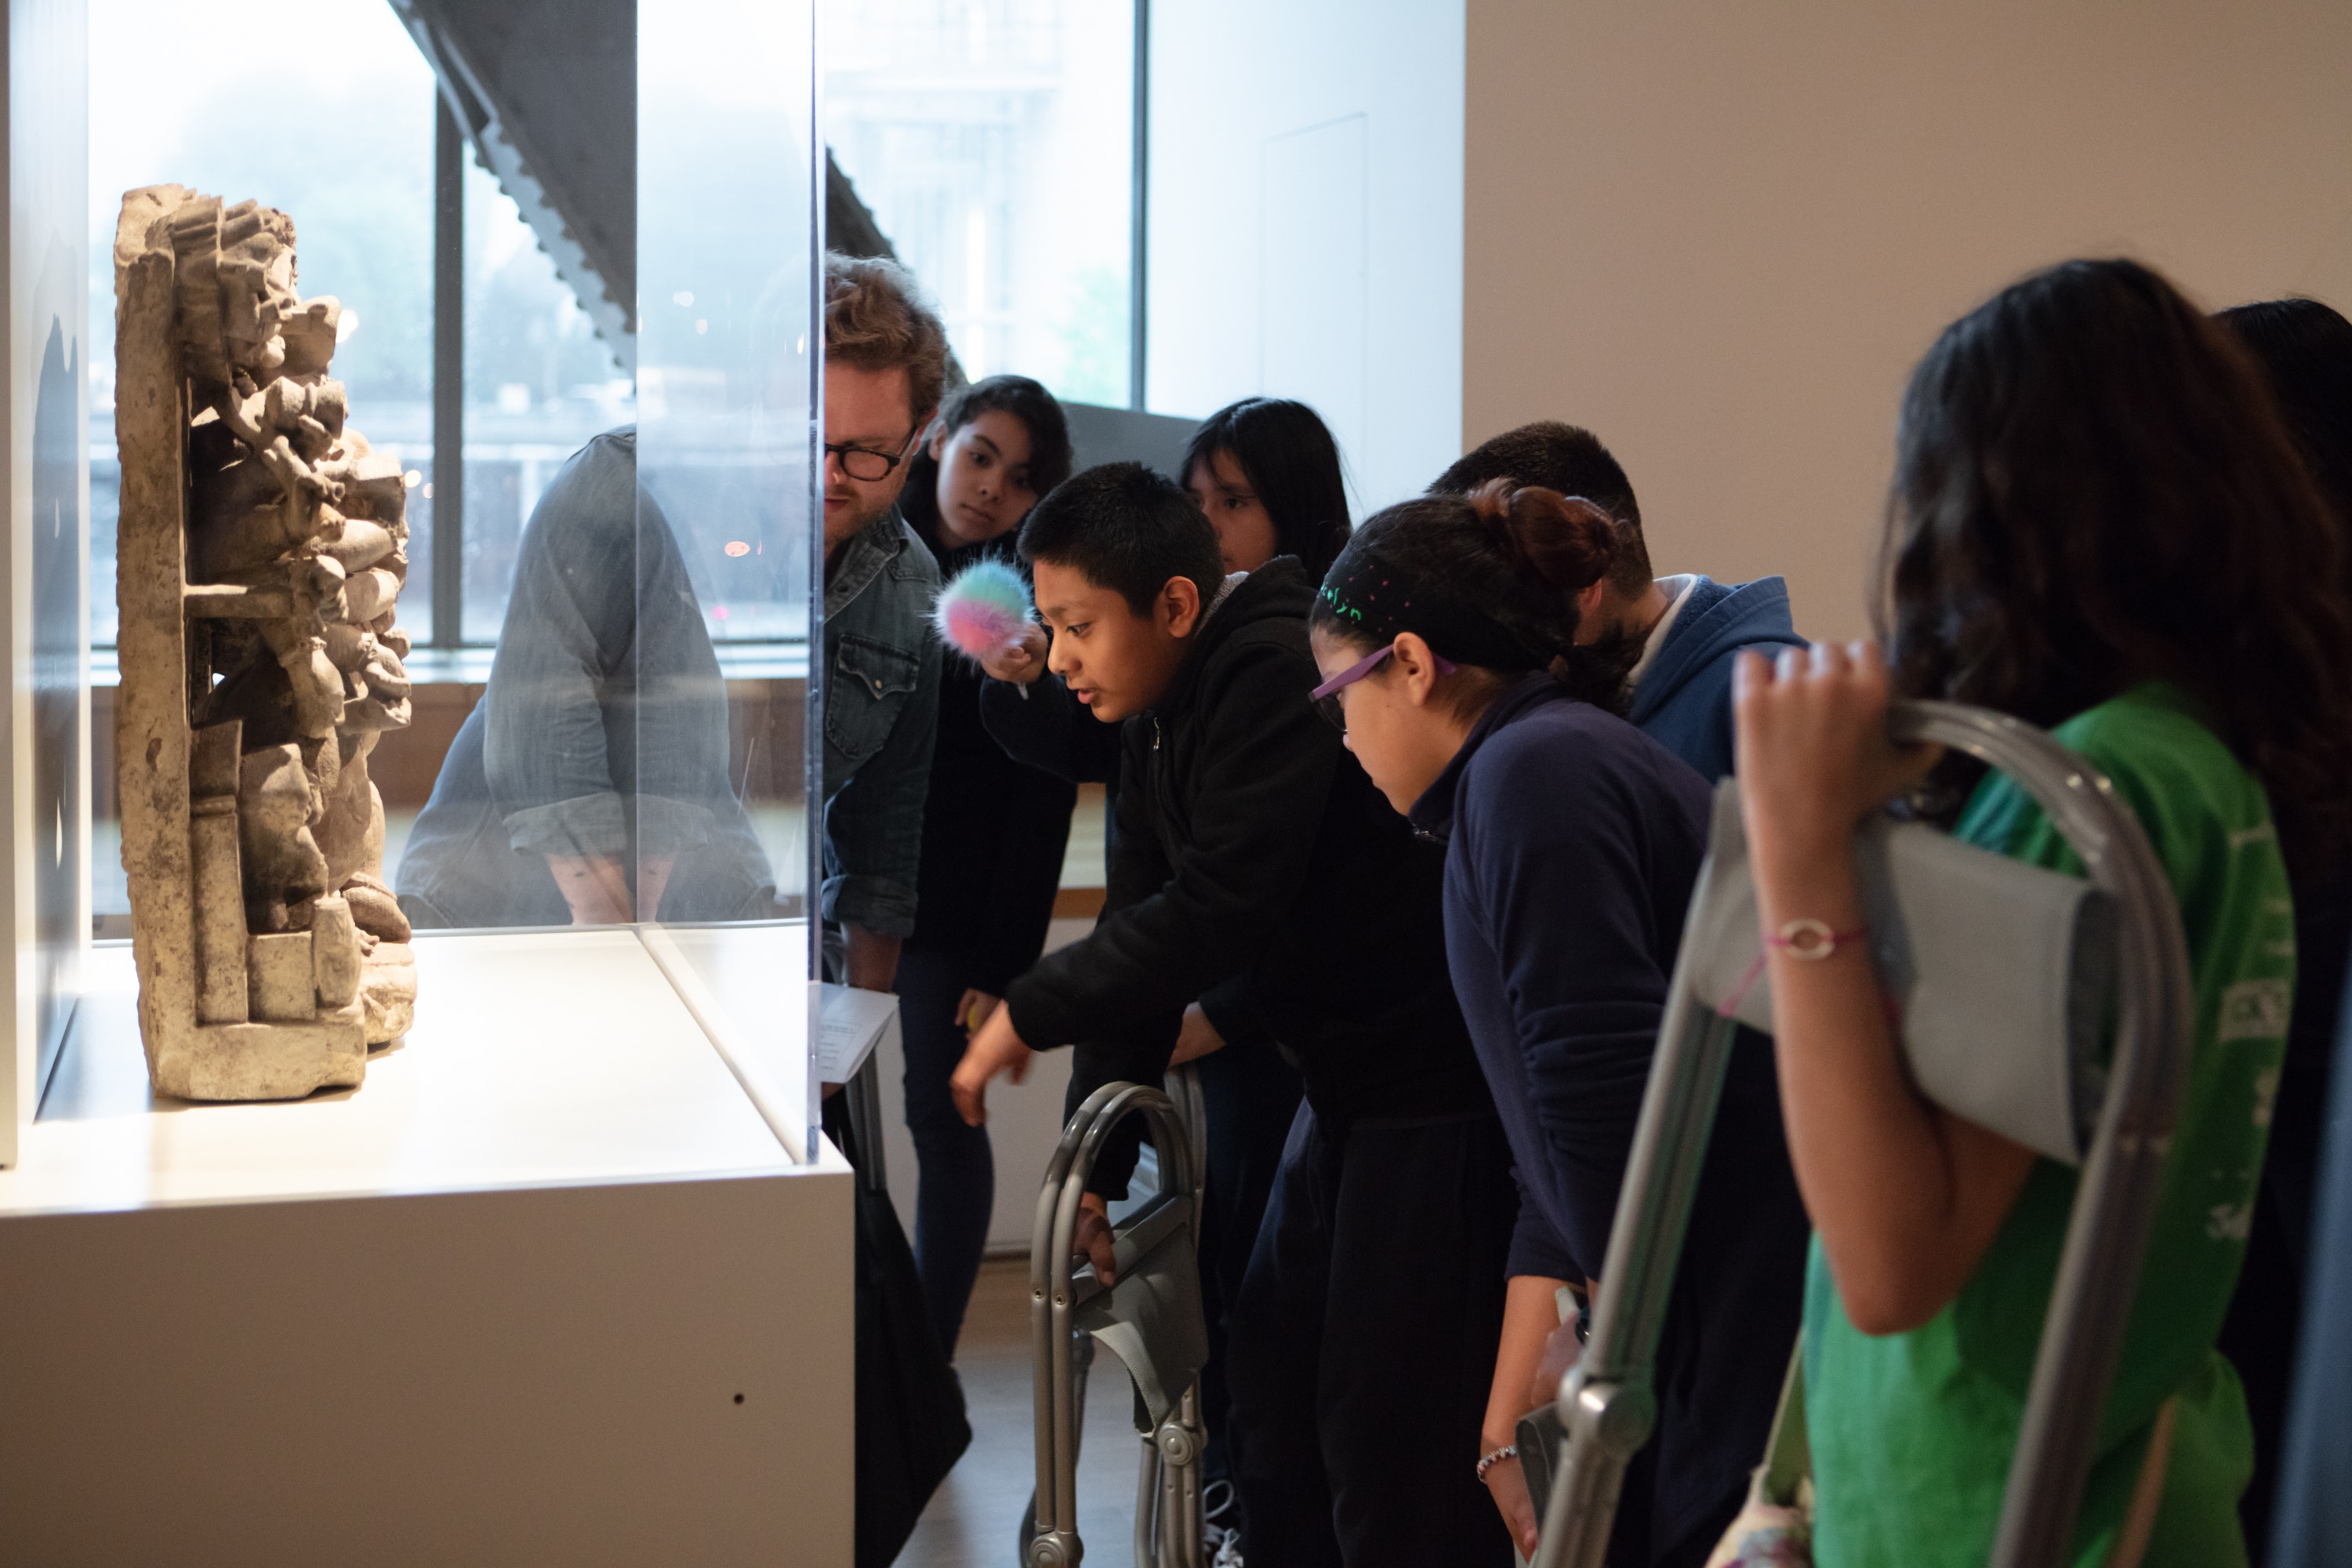 Groups of school kids looking at Asian art